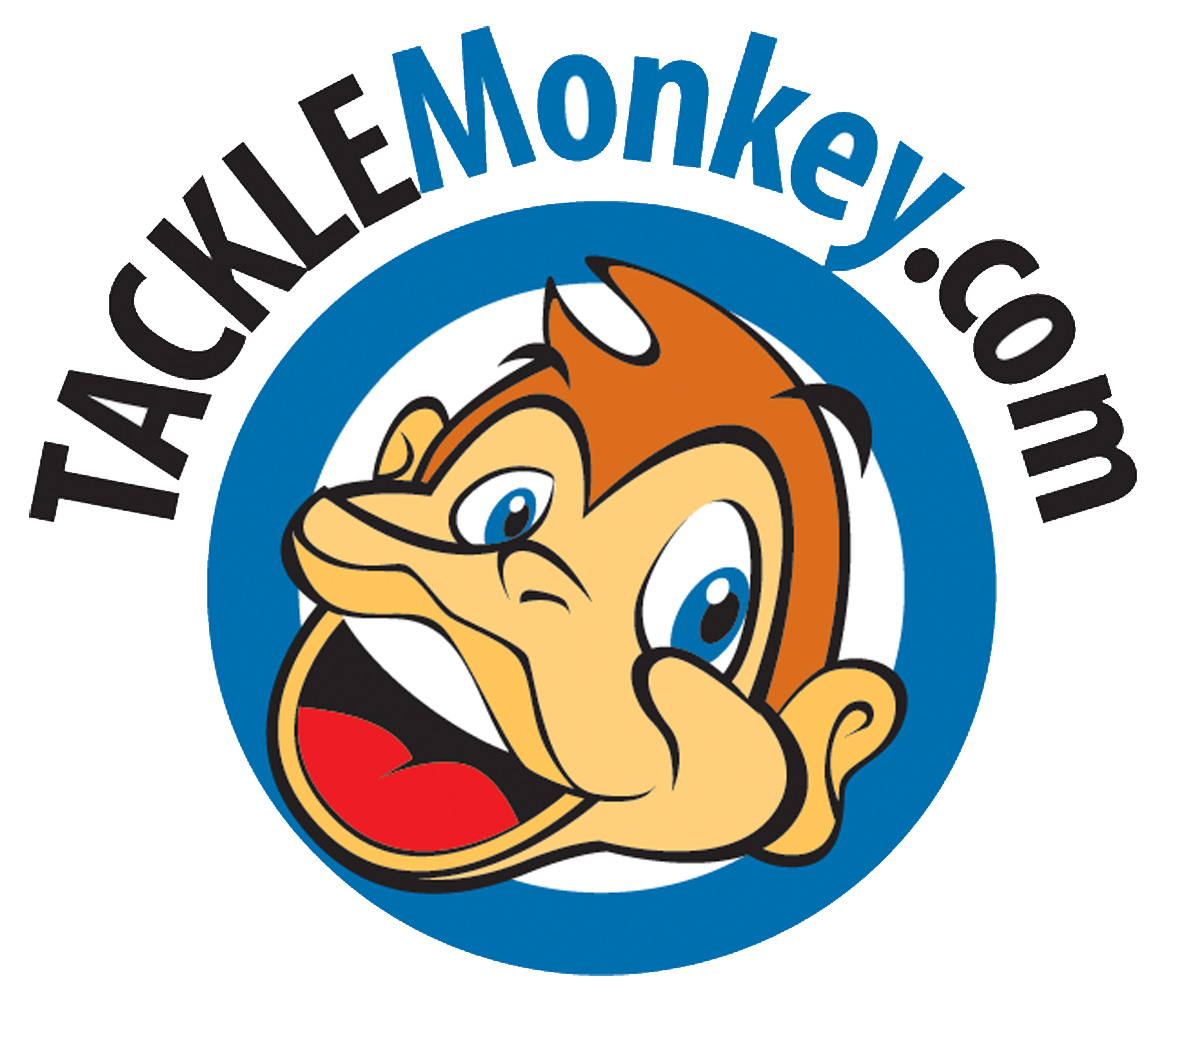 tacklemonkey.jpeg